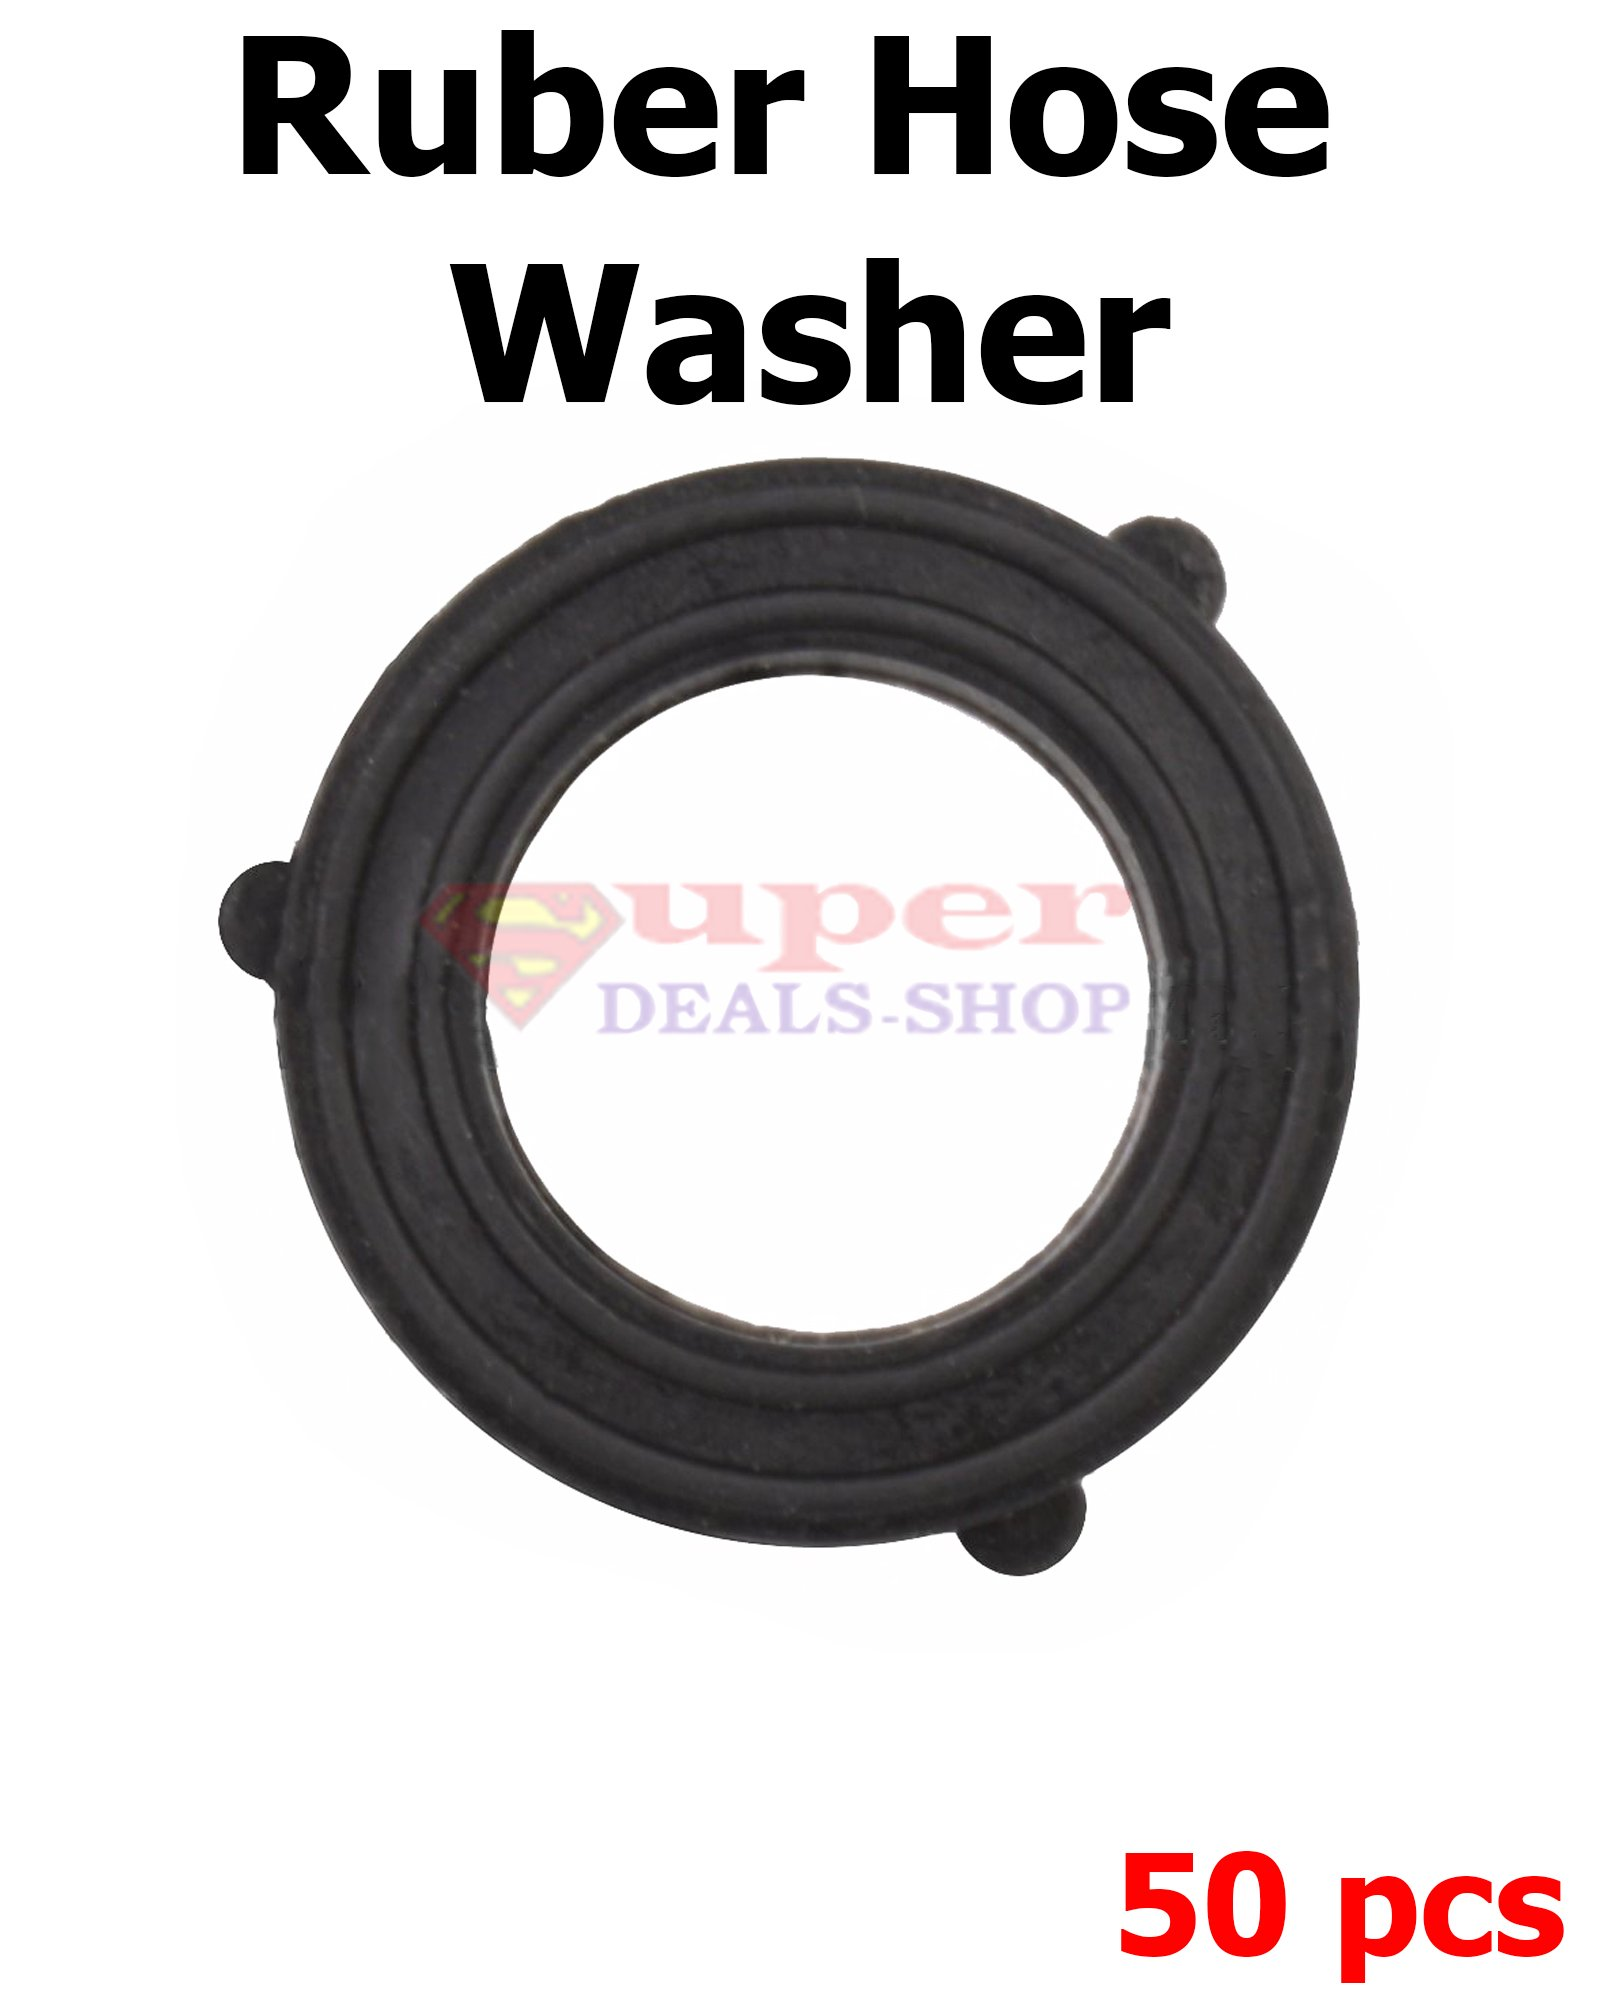 50 Pieces Garden Hose Washers Garden Hose Rubber Washer Heavy Duty Rubber Washer O-Ring Gasket Flat Hose Washers Super-Deals-Shop